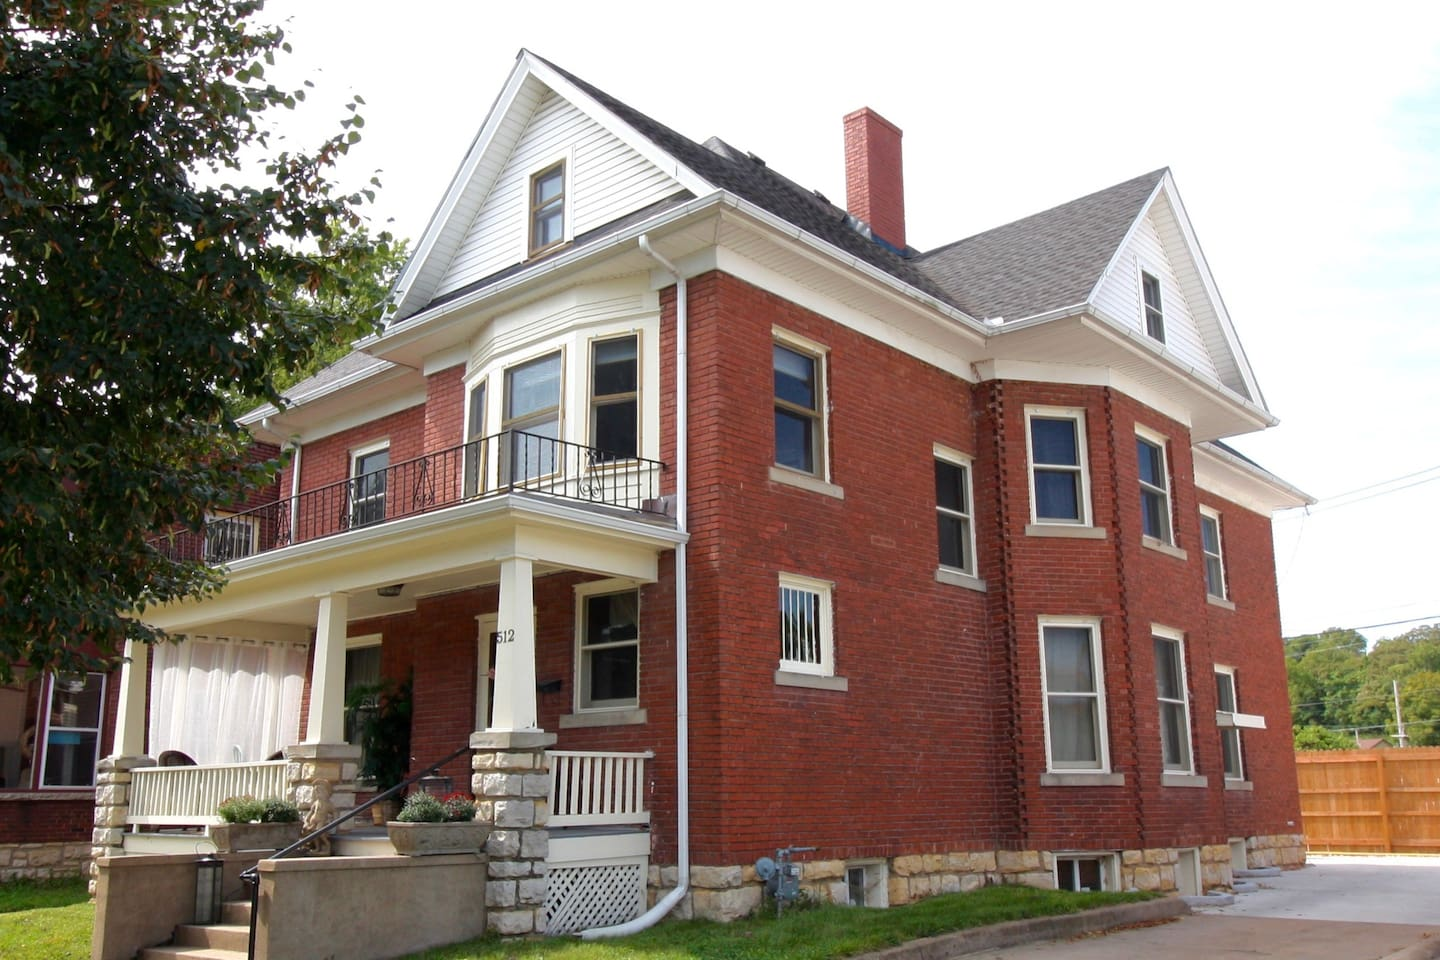 Blvd. Inn- The home was built as a boarding house in 1902 to handle the numerous visitors coming for the healing waters